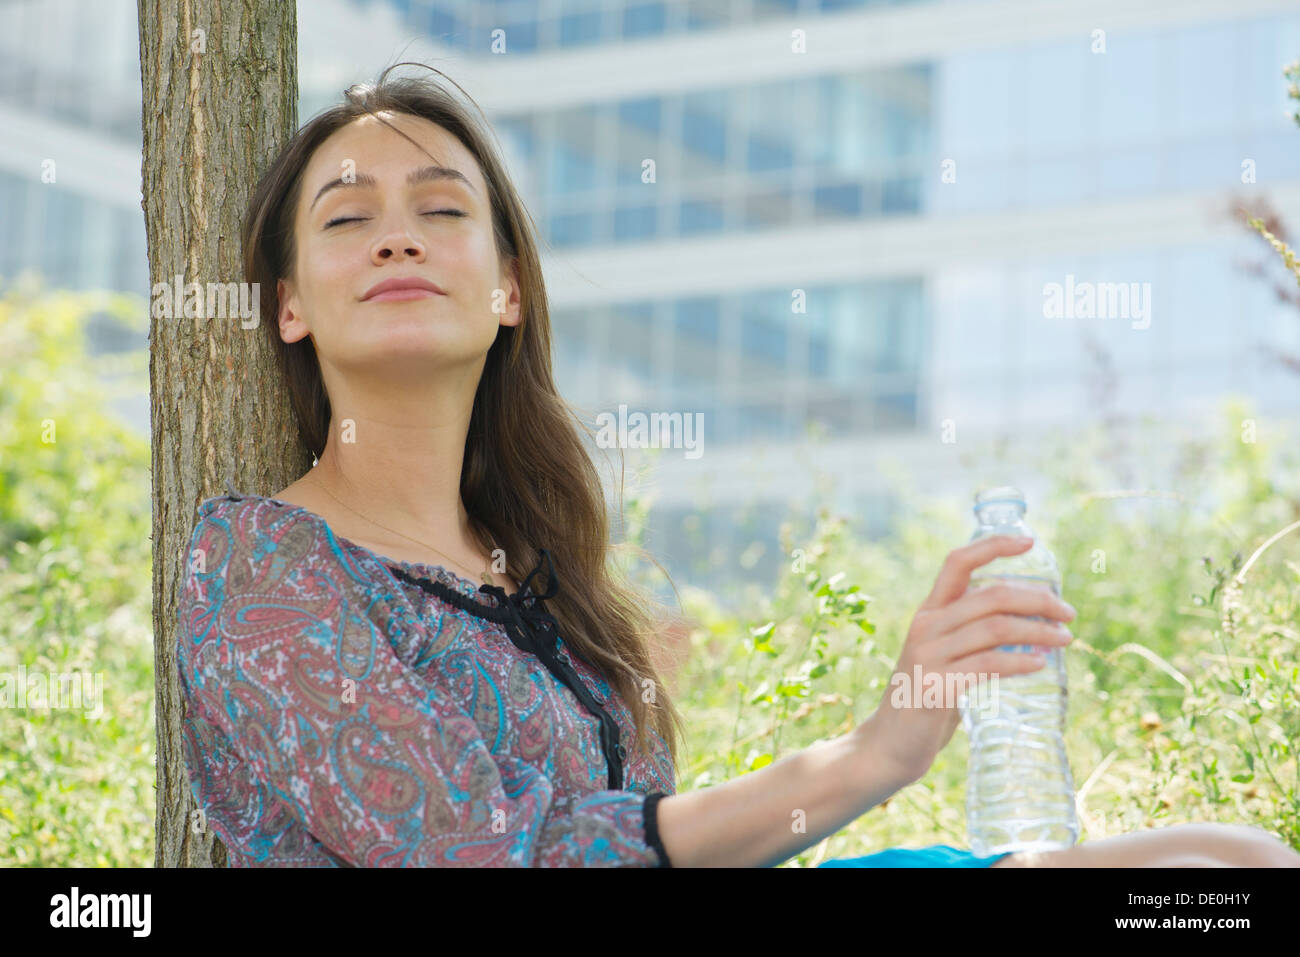 Woman relaxing outdoors with water bottle, eyes closed - Stock Image